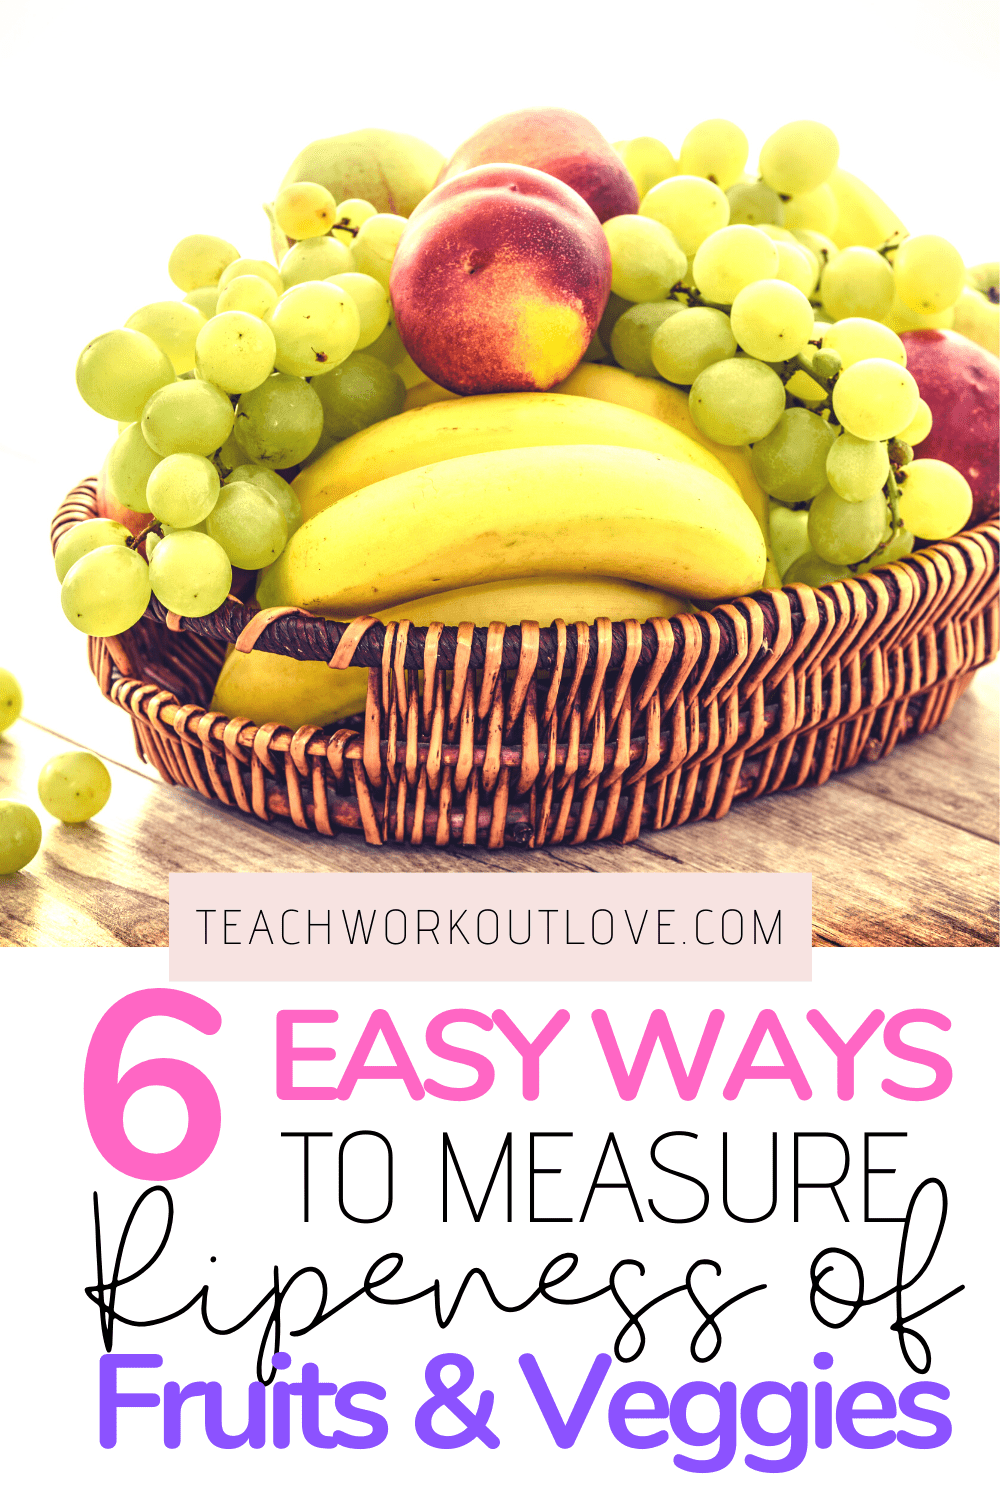 Here we have discussed the defining characteristics of ripe fruits that can help you to measure ripeness of fruits and vegetables.